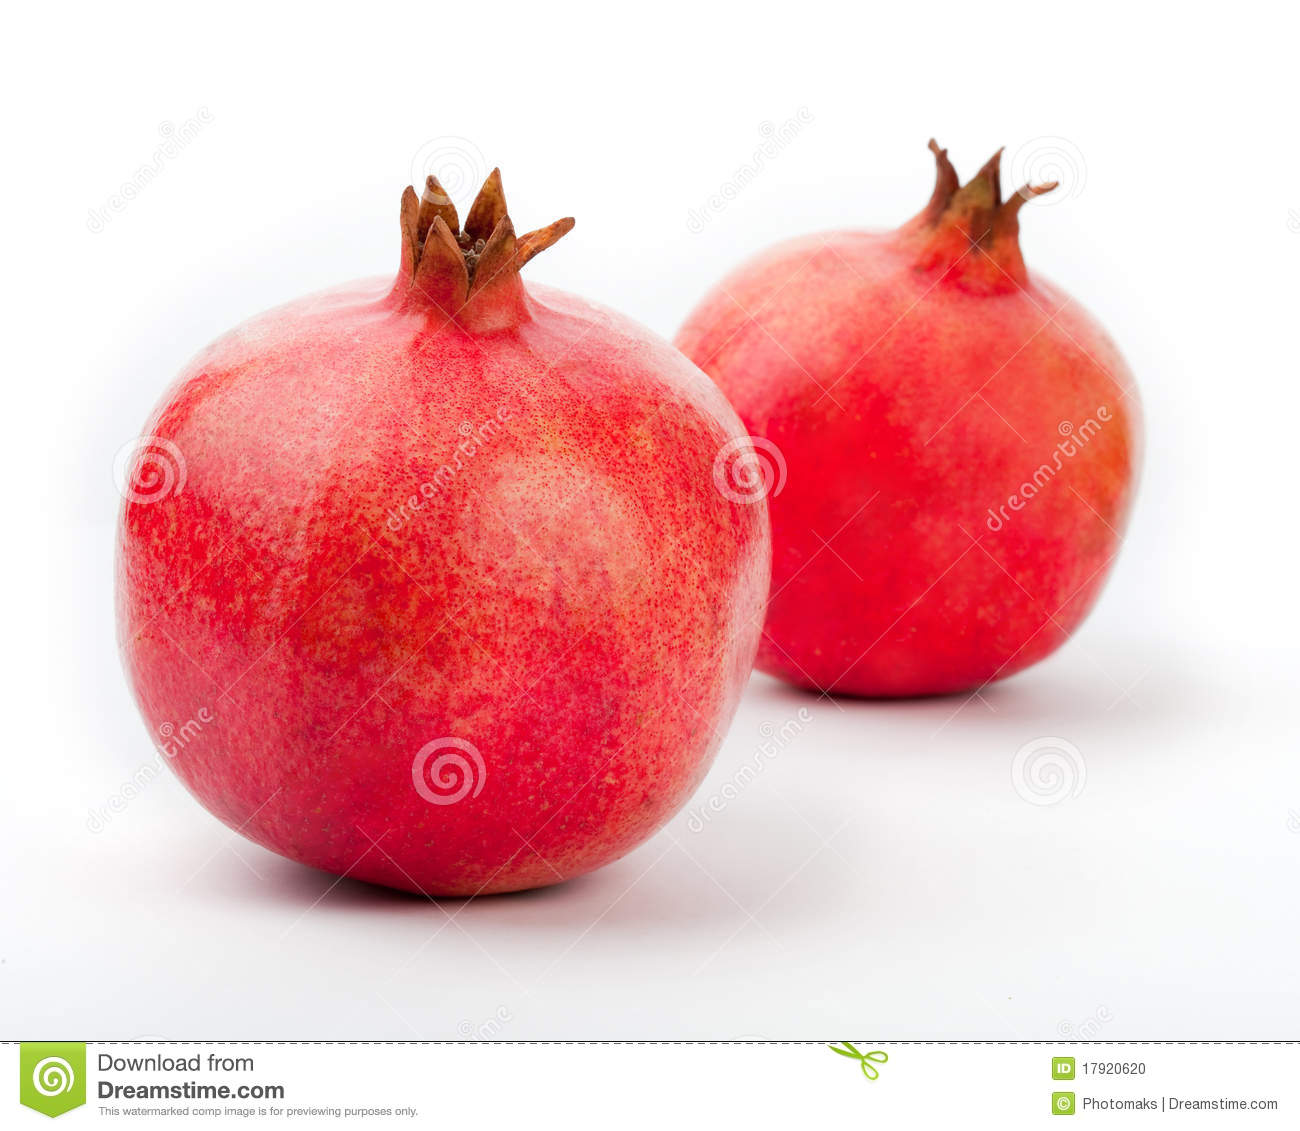 Pomegranate on a white